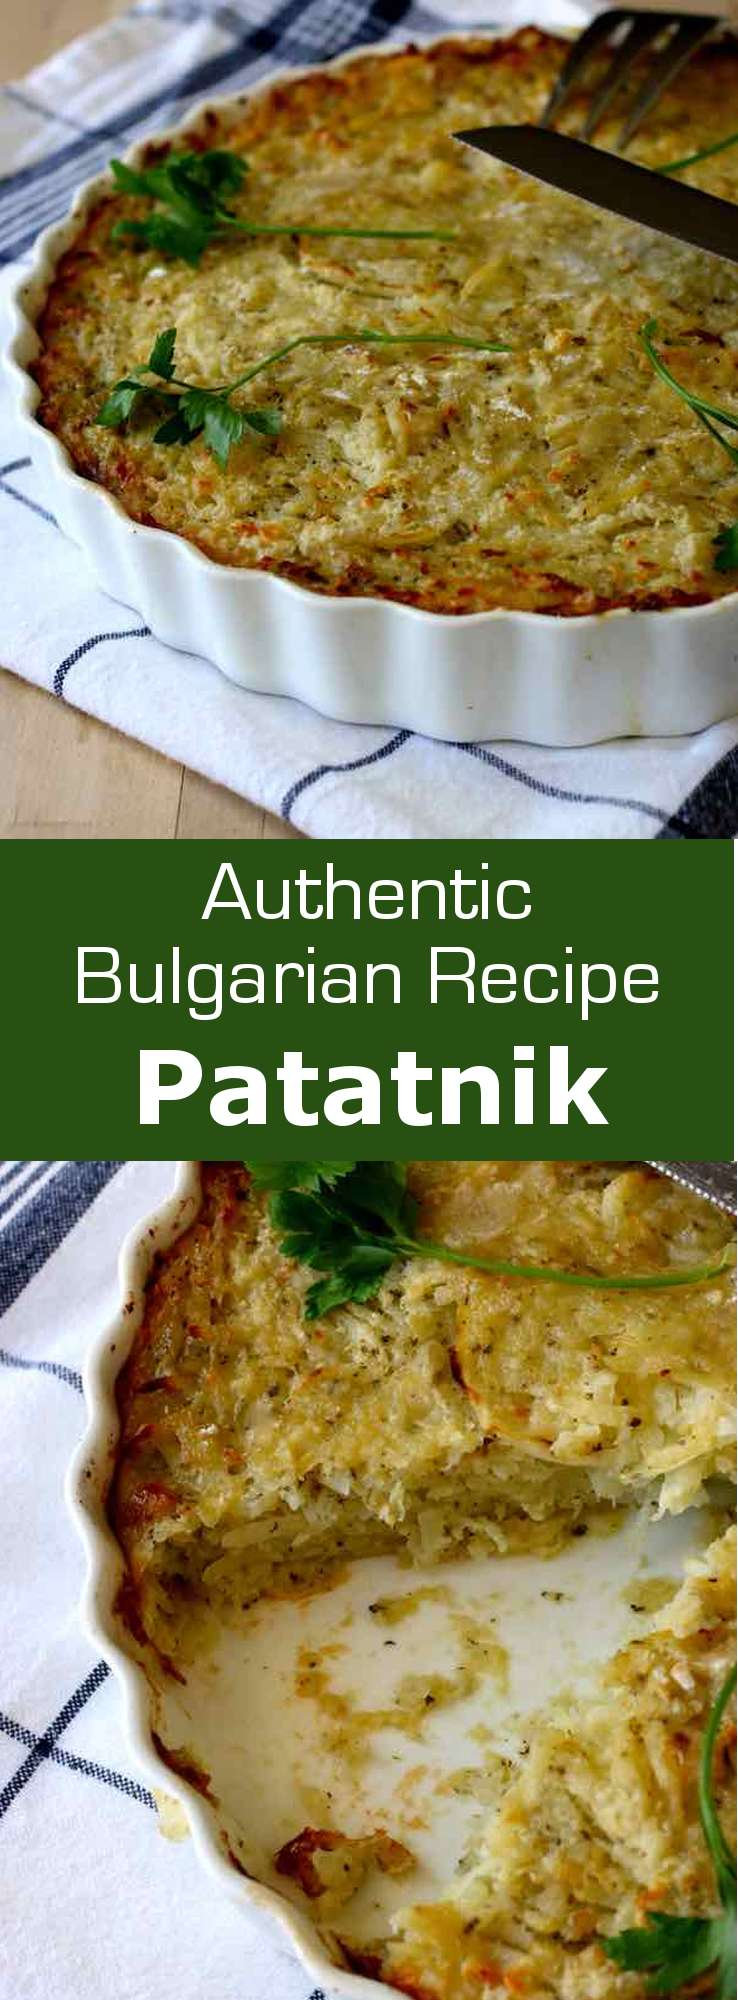 Patatnik is a traditional Bulgarian dish characteristic of the Rhodope Mountains. It is prepared with grated potatoes, onions, salt and spearmint.  #Bulgaria #Bulgarian #BulgarianCuisine #BulgarianFood #BulgarianRecipe #WorldCuisine #196flavors